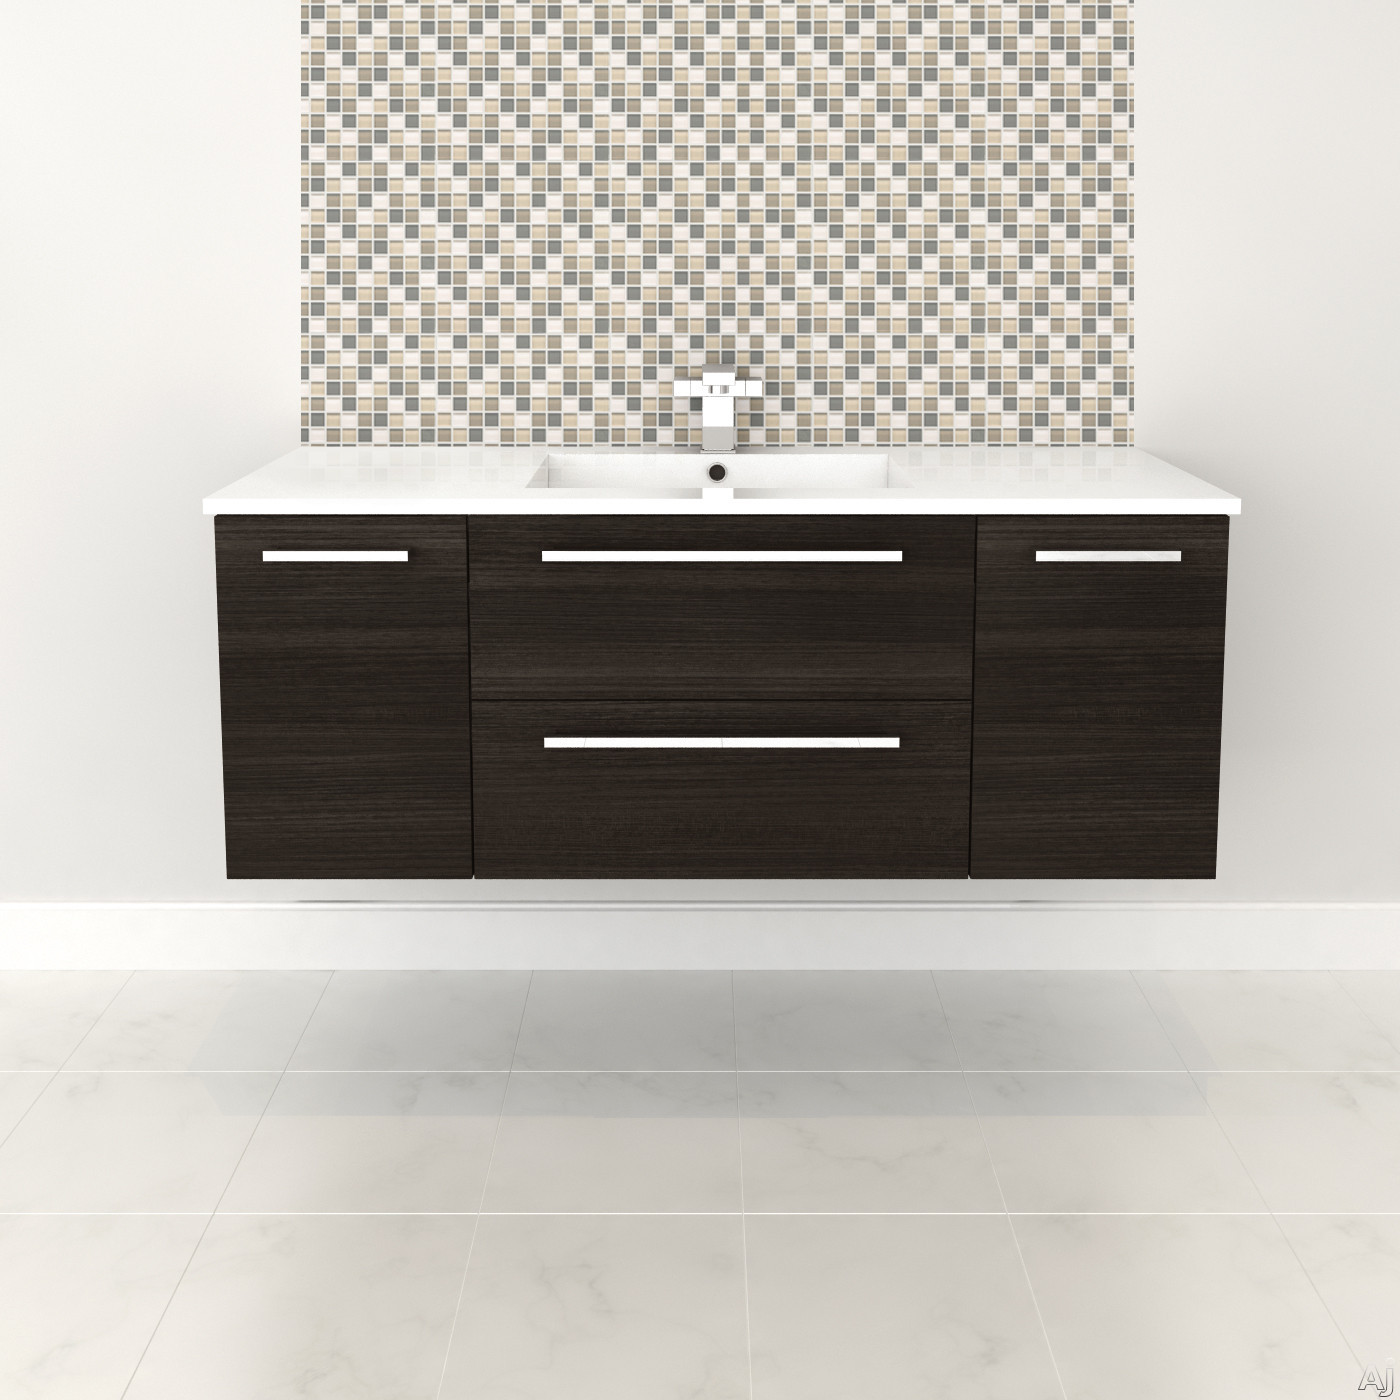 Cutler Kitchen & Bath Silhouette FVDCHOC48 48 Inch Wall Mount Vanity with 2 Soft Close Drawers, Countertop and Sink and Handles Included: Dark Chocolate